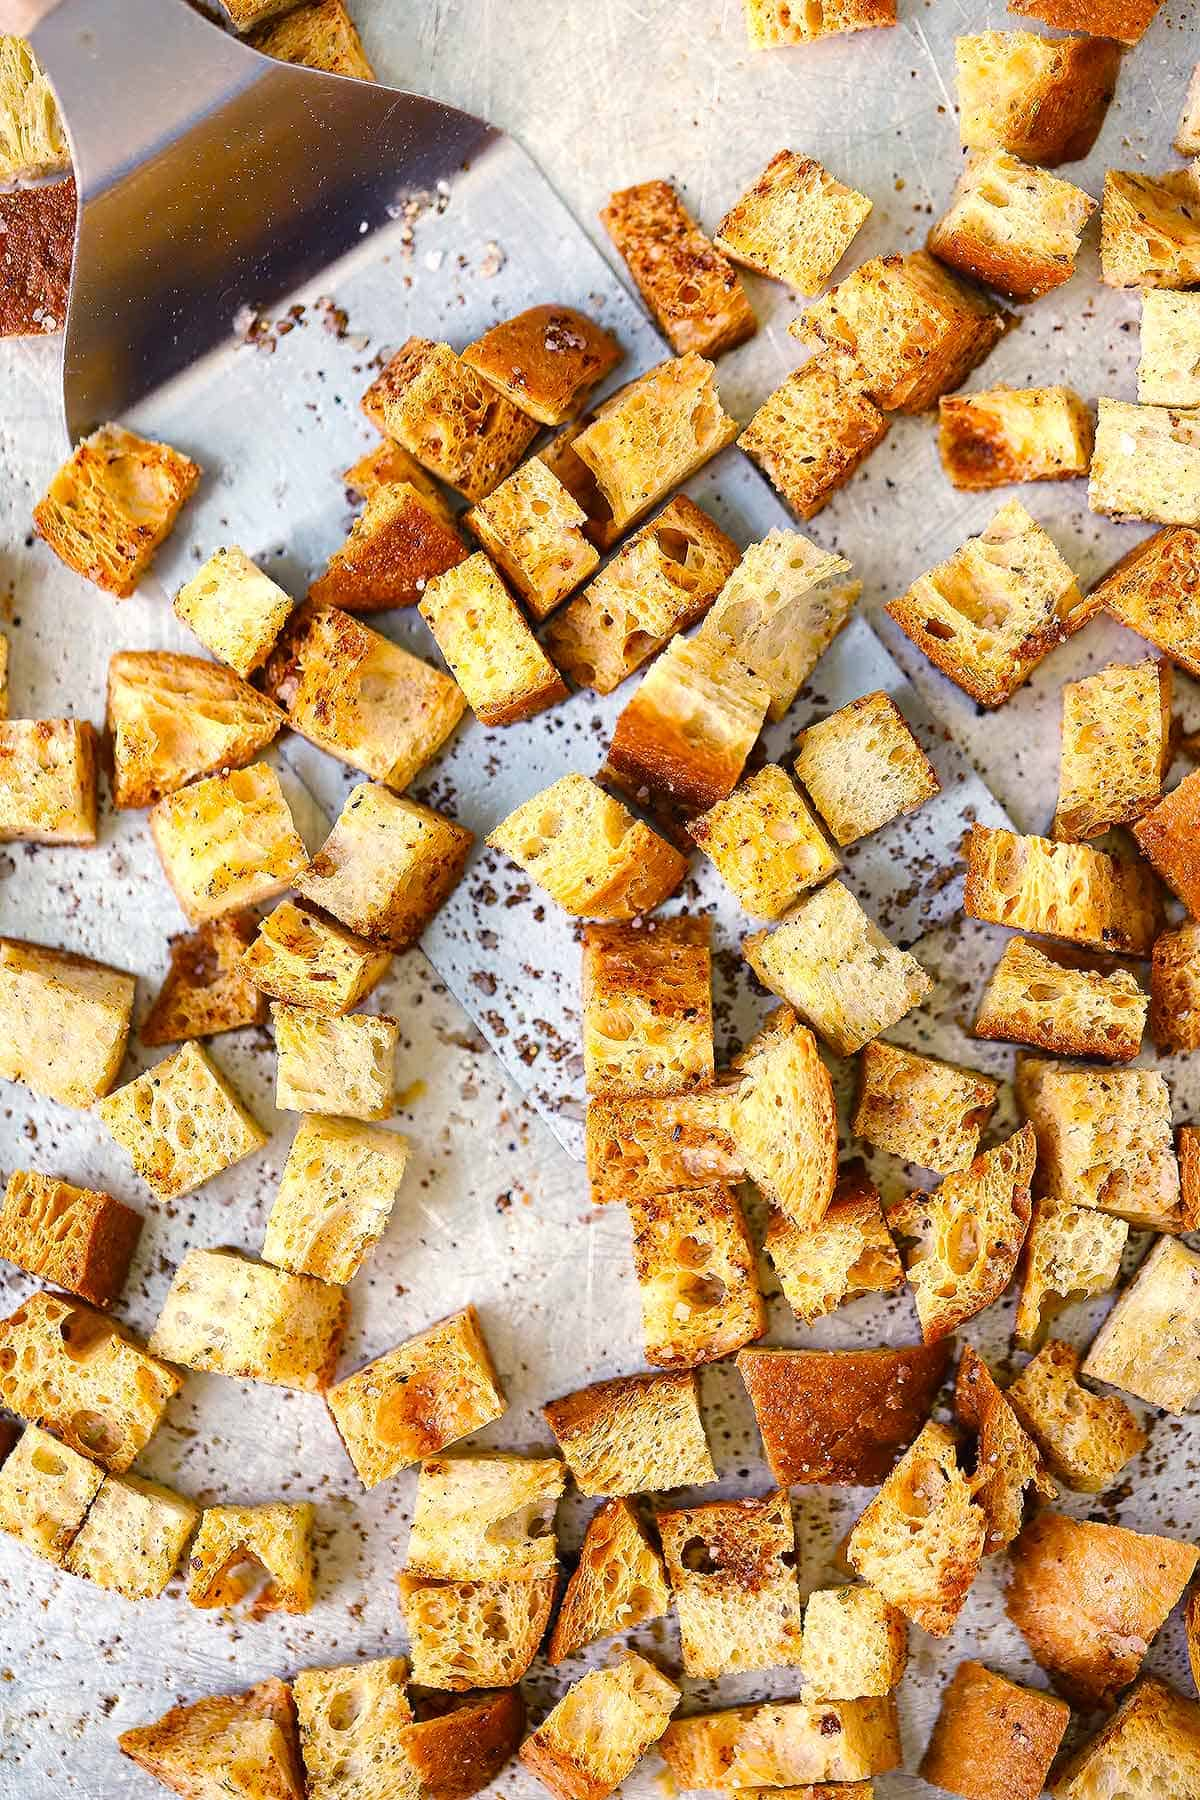 """Several croutons pictured on a white surface, with overlaid text that reads """"Homemade Whole Wheat Croutons."""""""